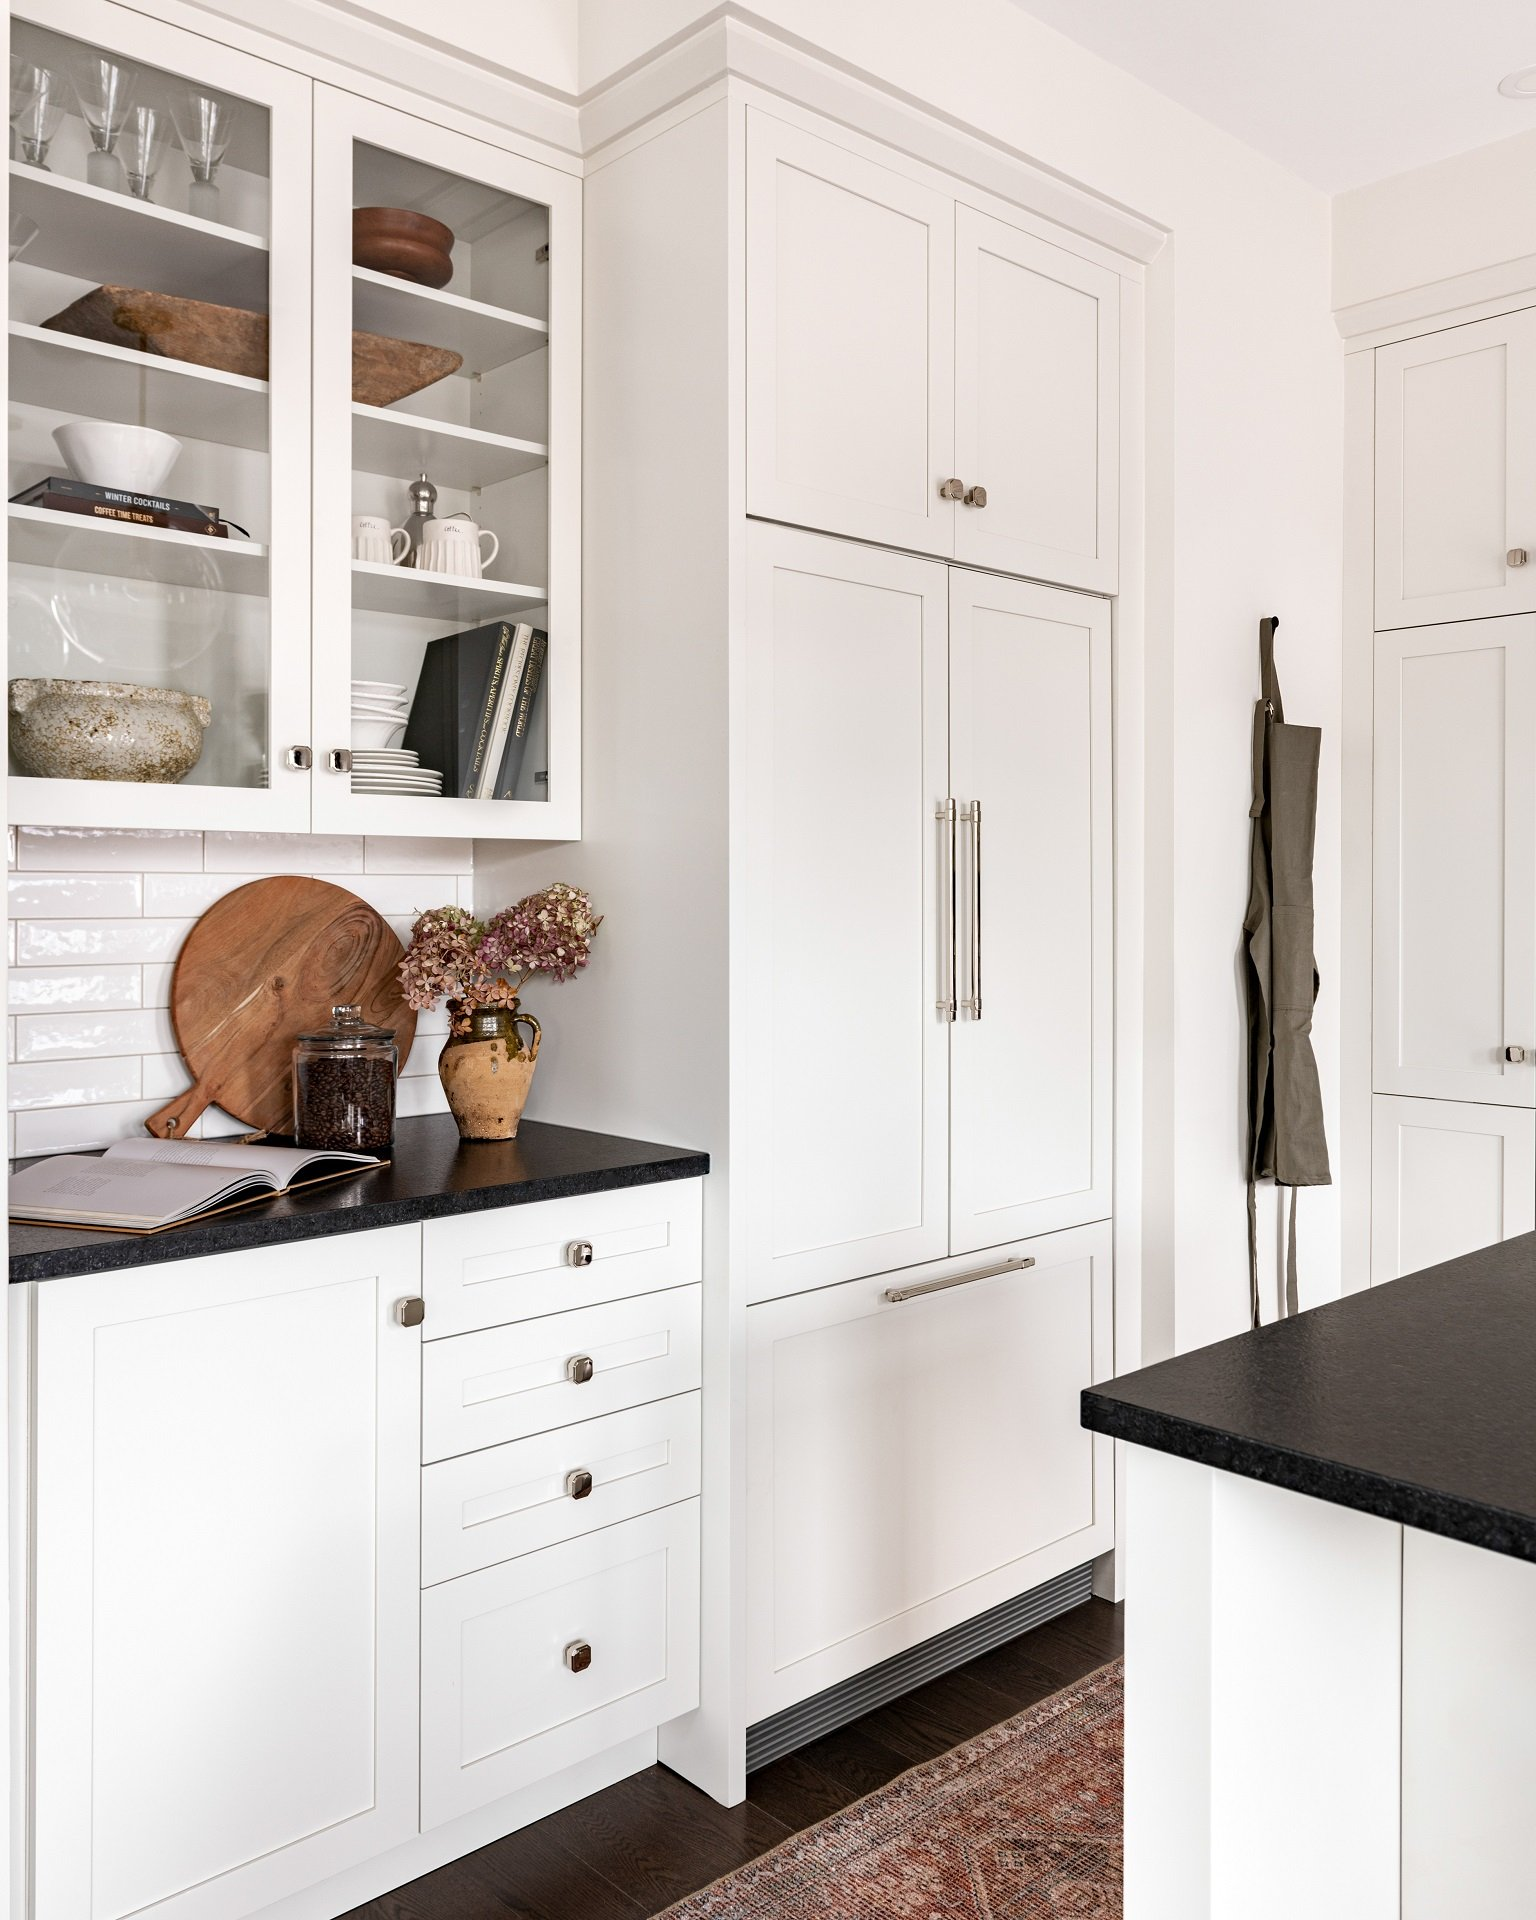 White glass cabinets with white interior shelving